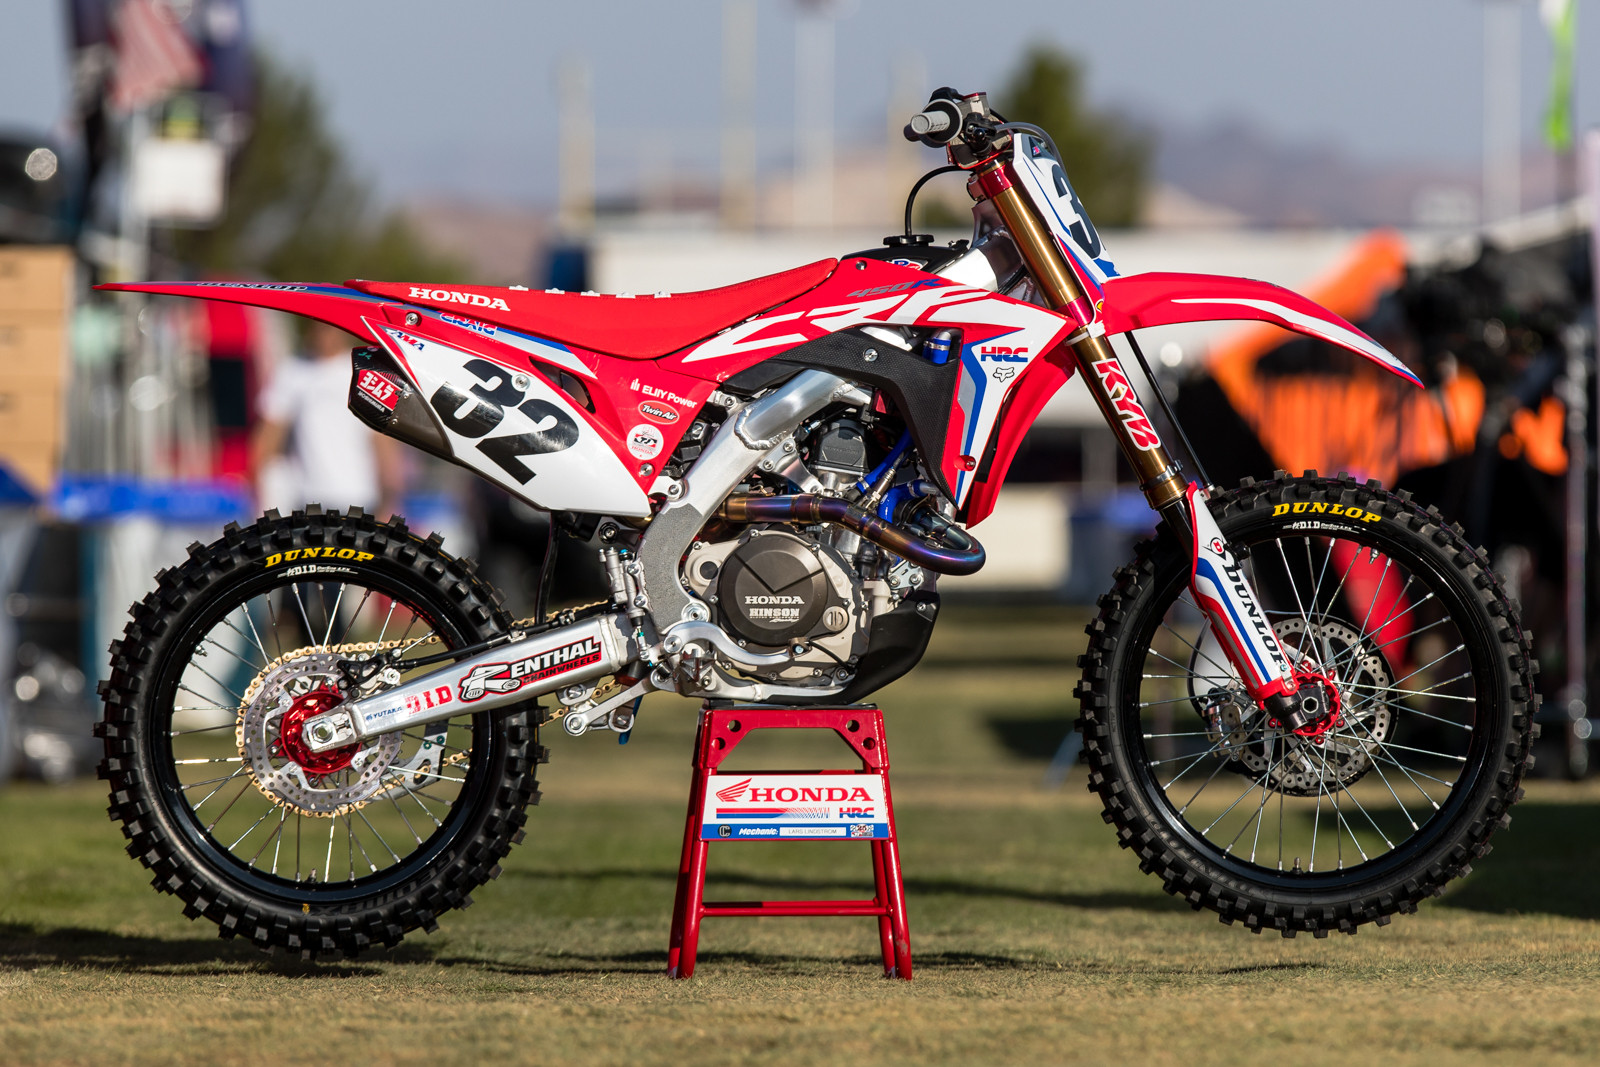 Cole Seely's machine is being piloted by Christian Craig for this year's MEC. And yes, Craig is #32 going into 2018.